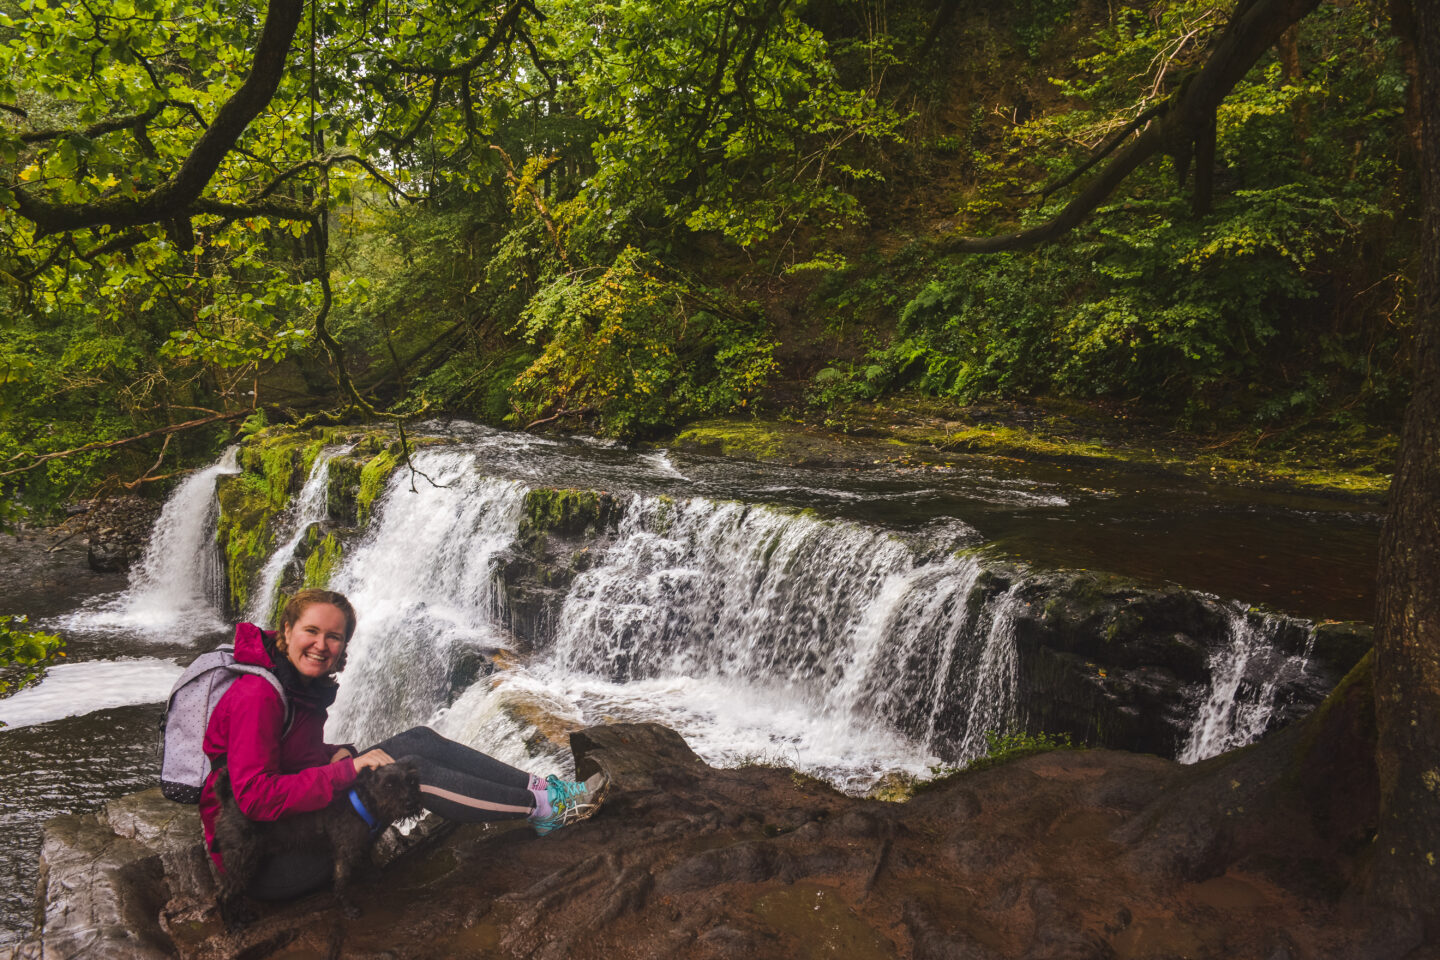 Sophie and Henry the dog at the Brecon Beacons waterfalls